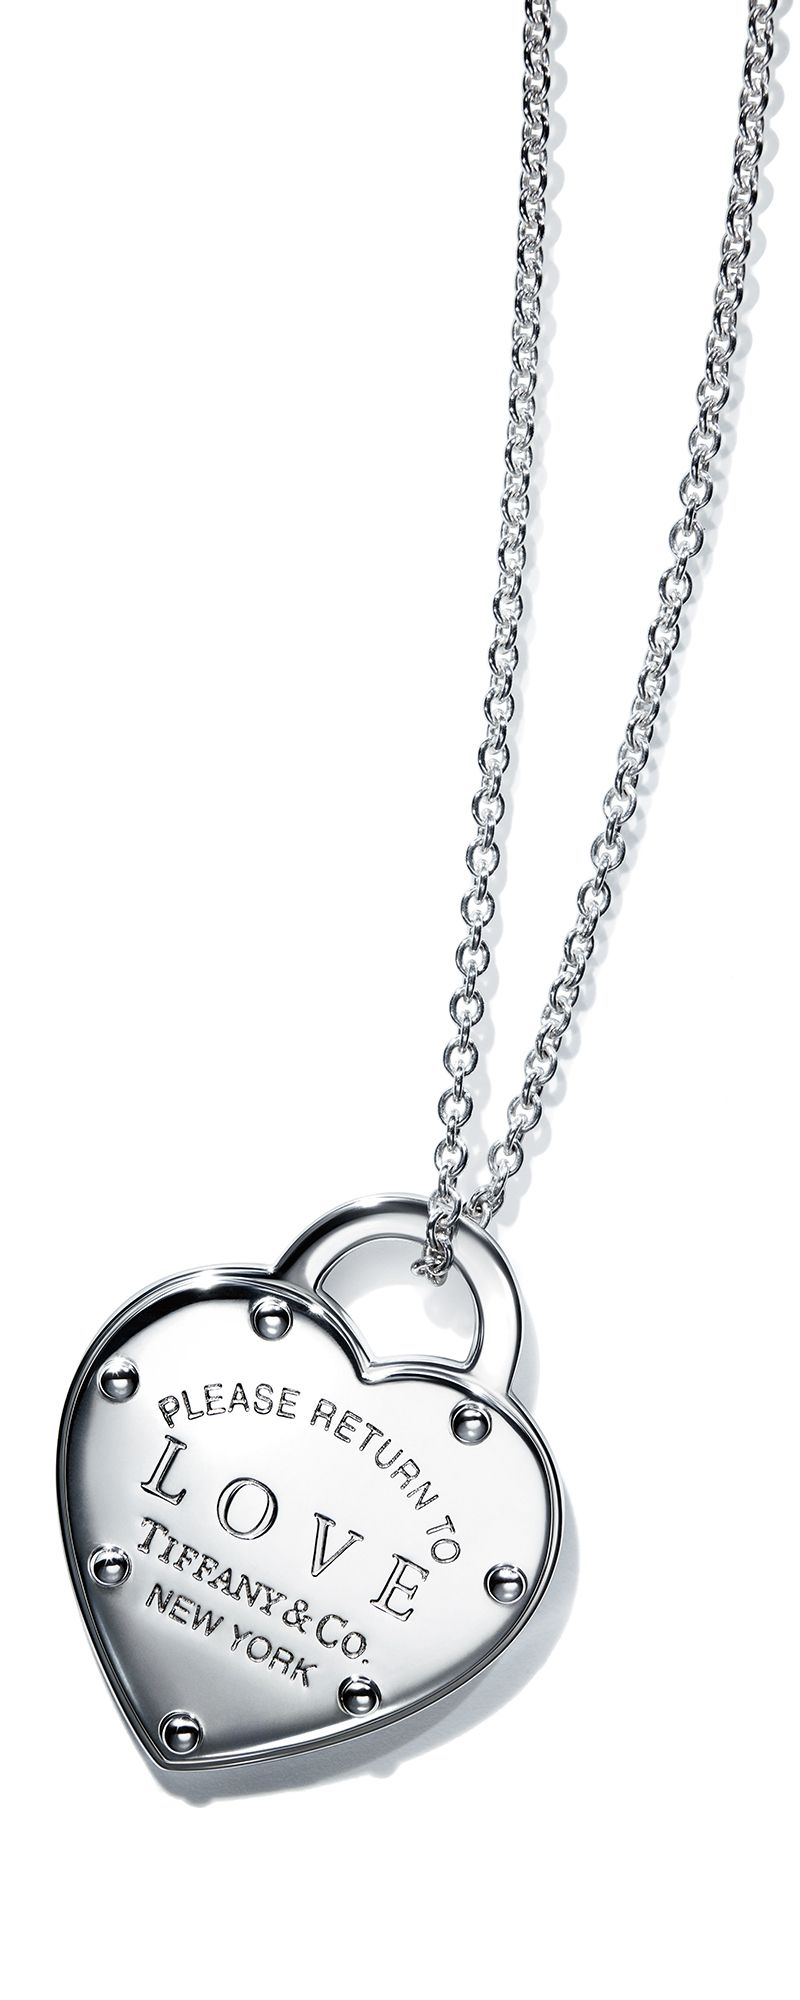 98f274e6826 Return to Tiffany® Love lock necklace in sterling silver.